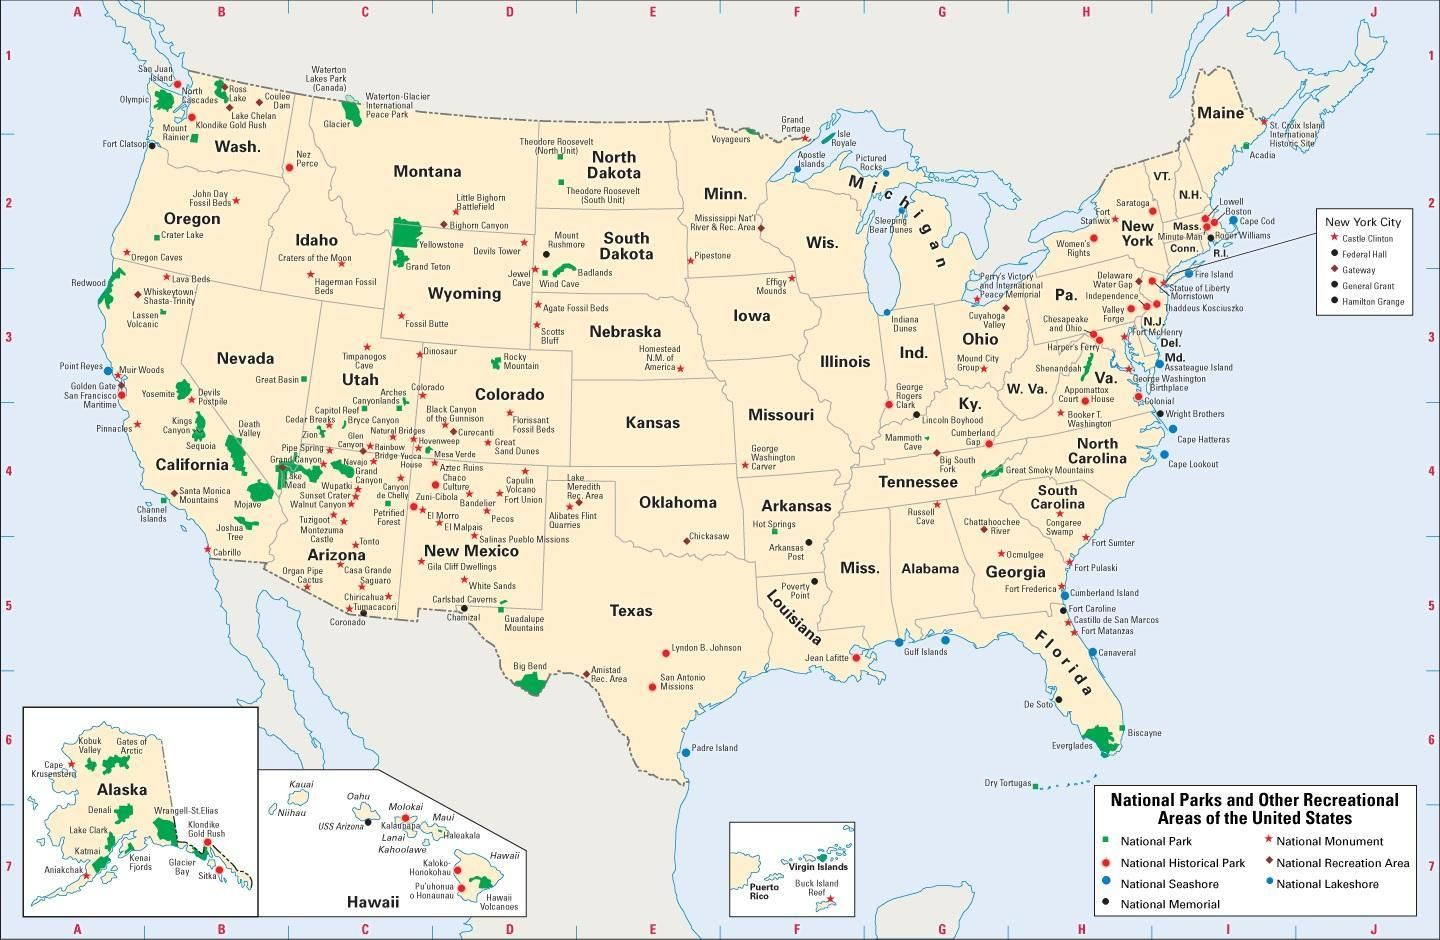 U.S. National Parks | National parks map, Us national parks ...